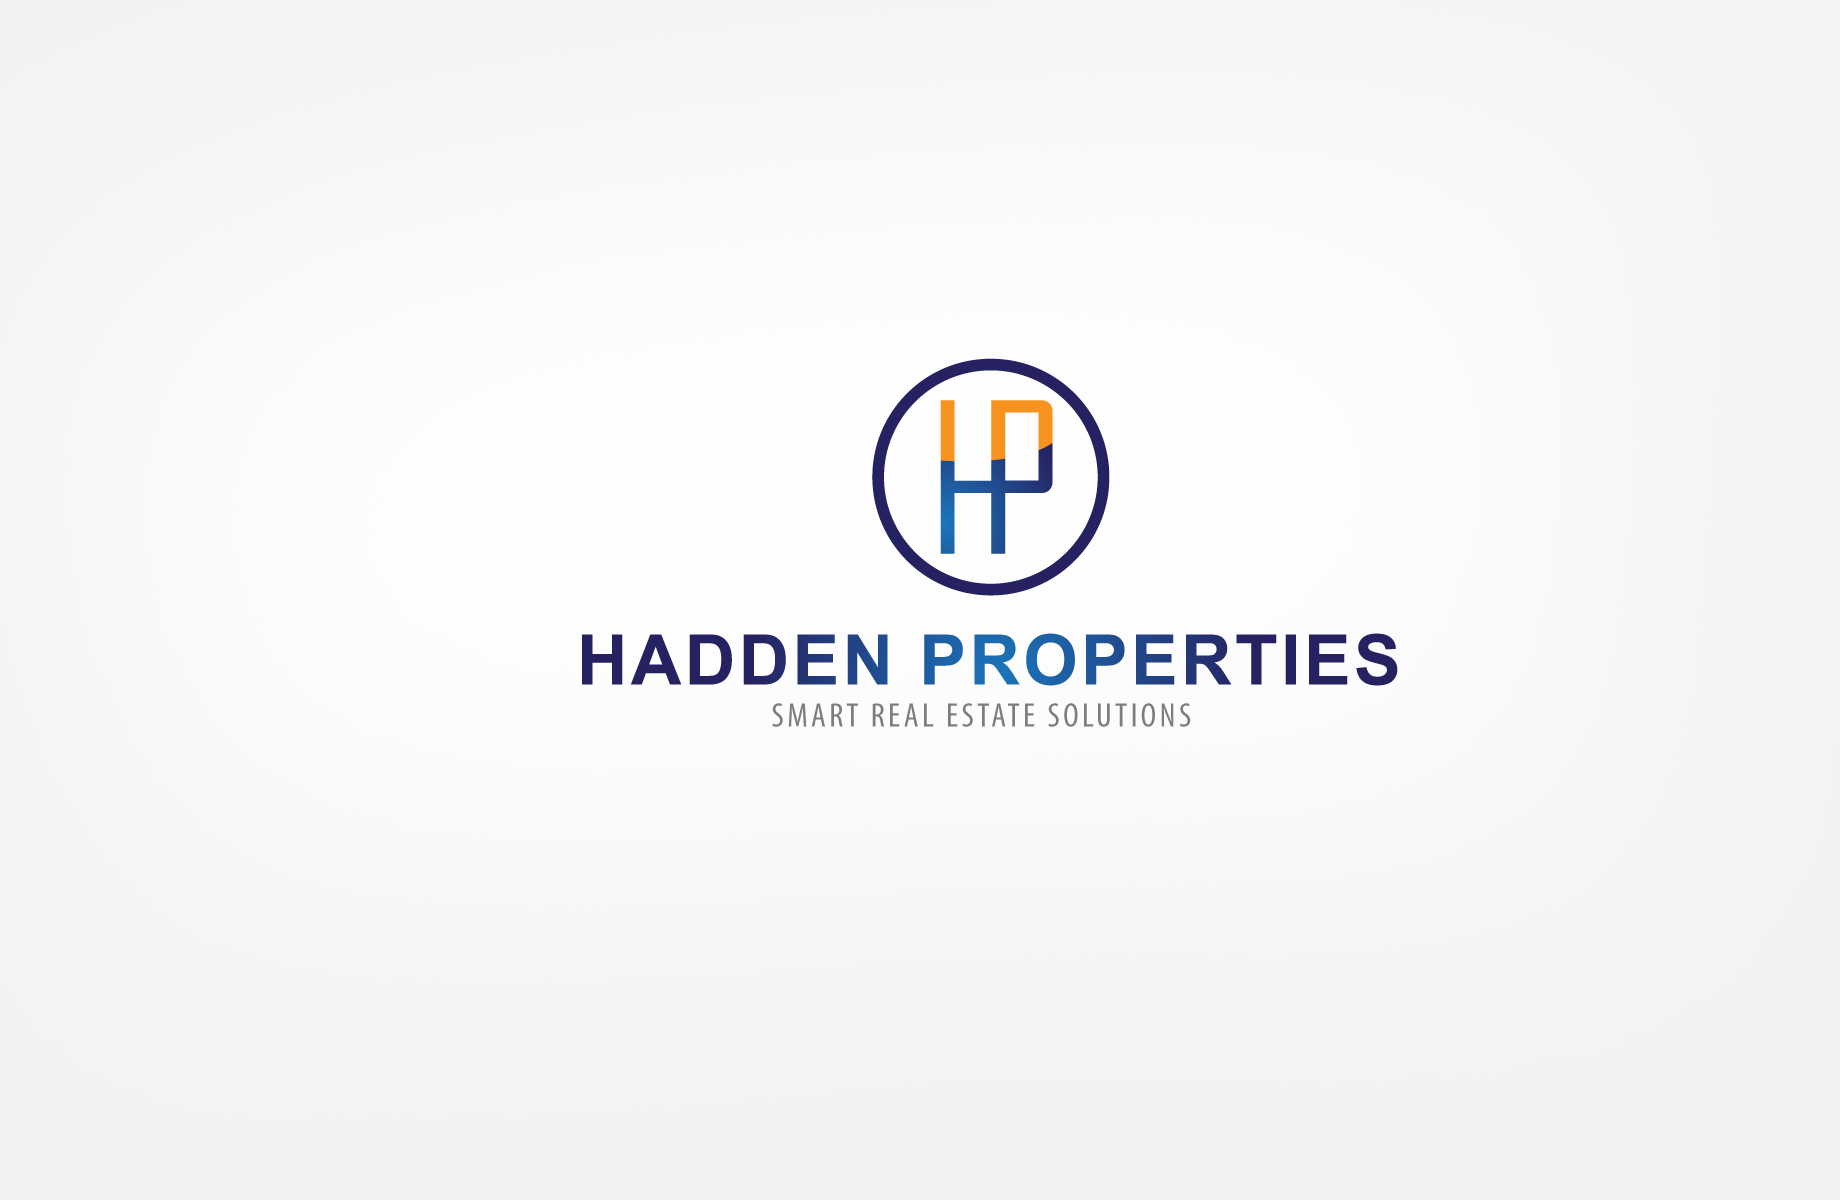 Logo Design by Jan Chua - Entry No. 56 in the Logo Design Contest Artistic Logo Design for Hadden Properties.